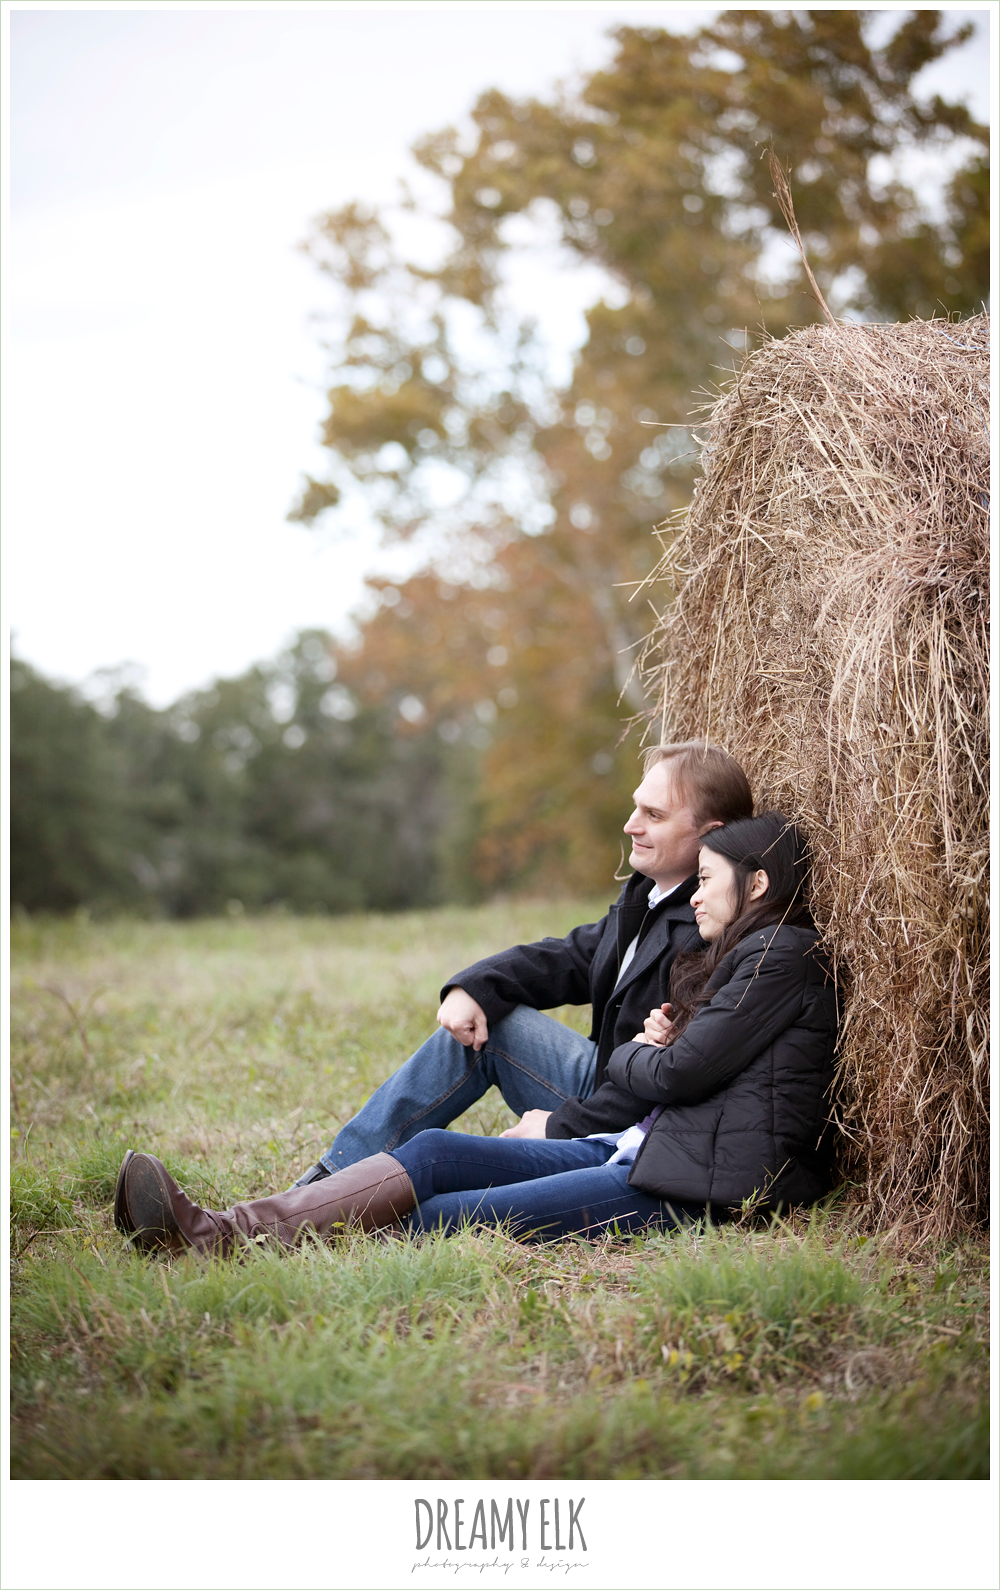 shin and derek, winter engagements with a haystack, dreamy elk photography and design